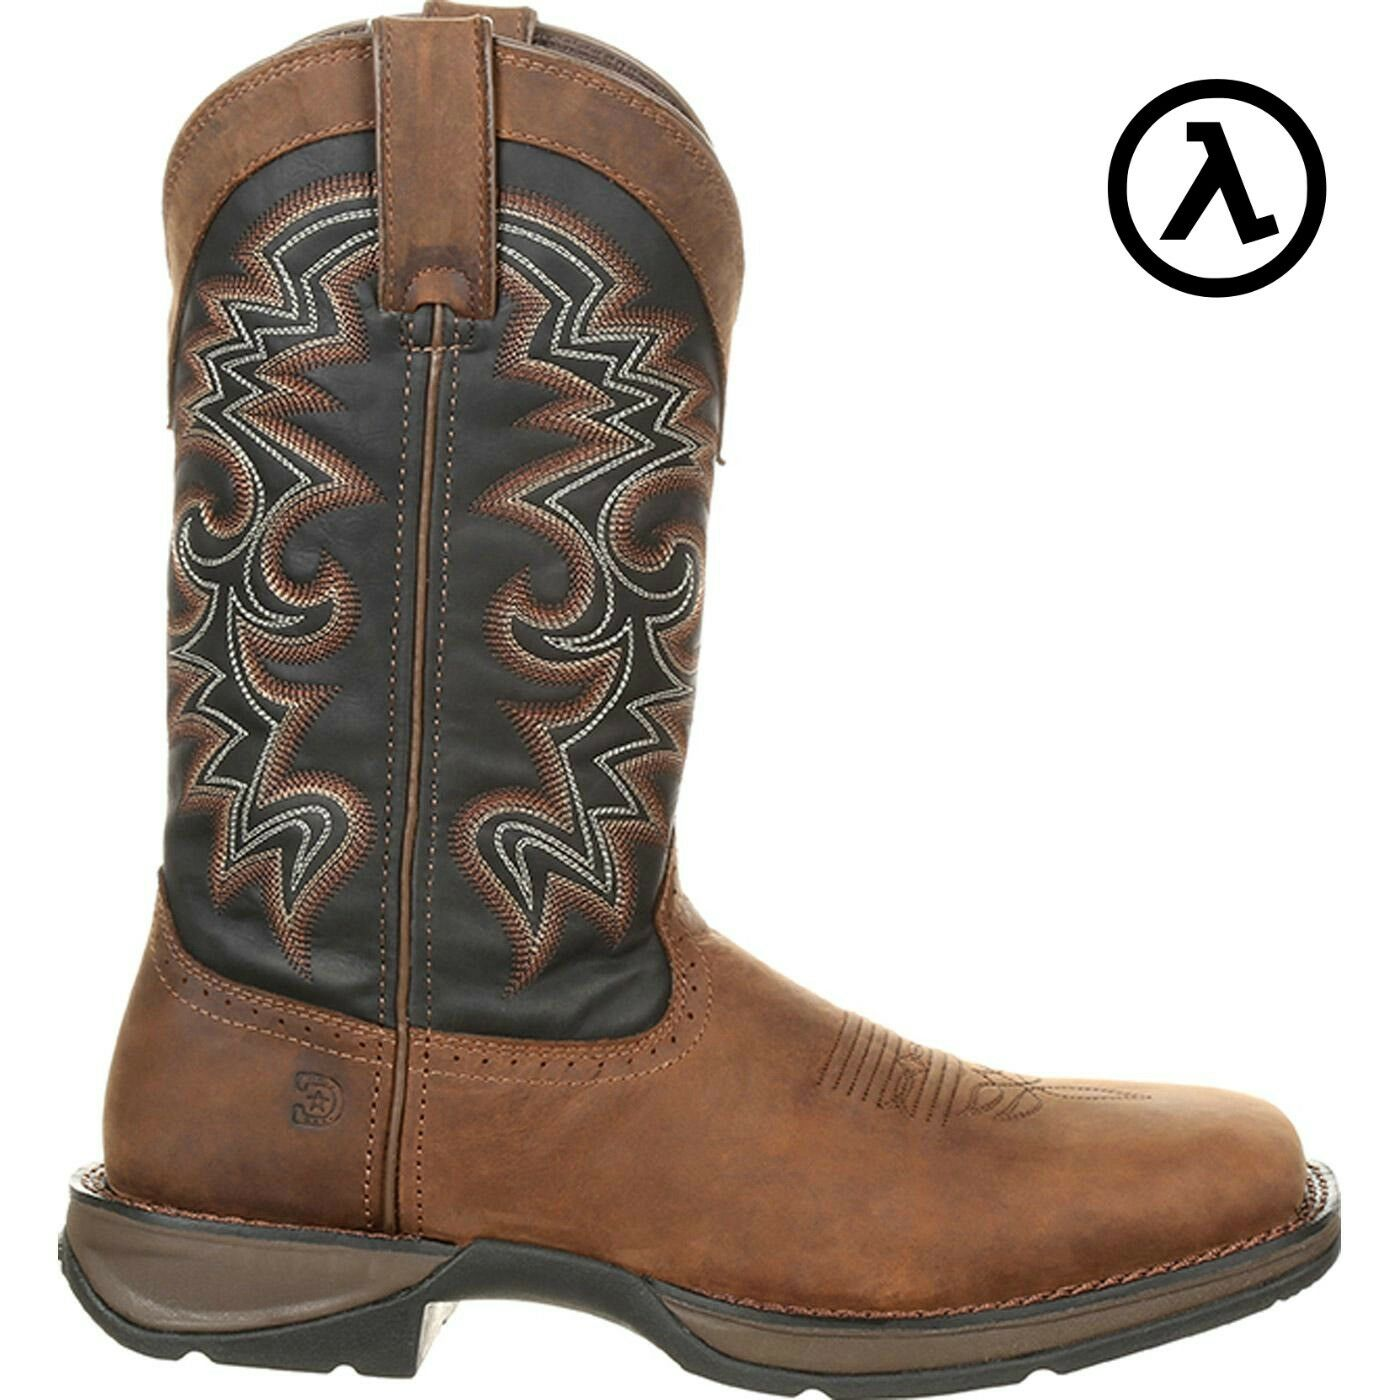 REBEL BY DURANGO PULL-ON WESTERN BOOTS DDB0135 * ALL SIZES - NEW